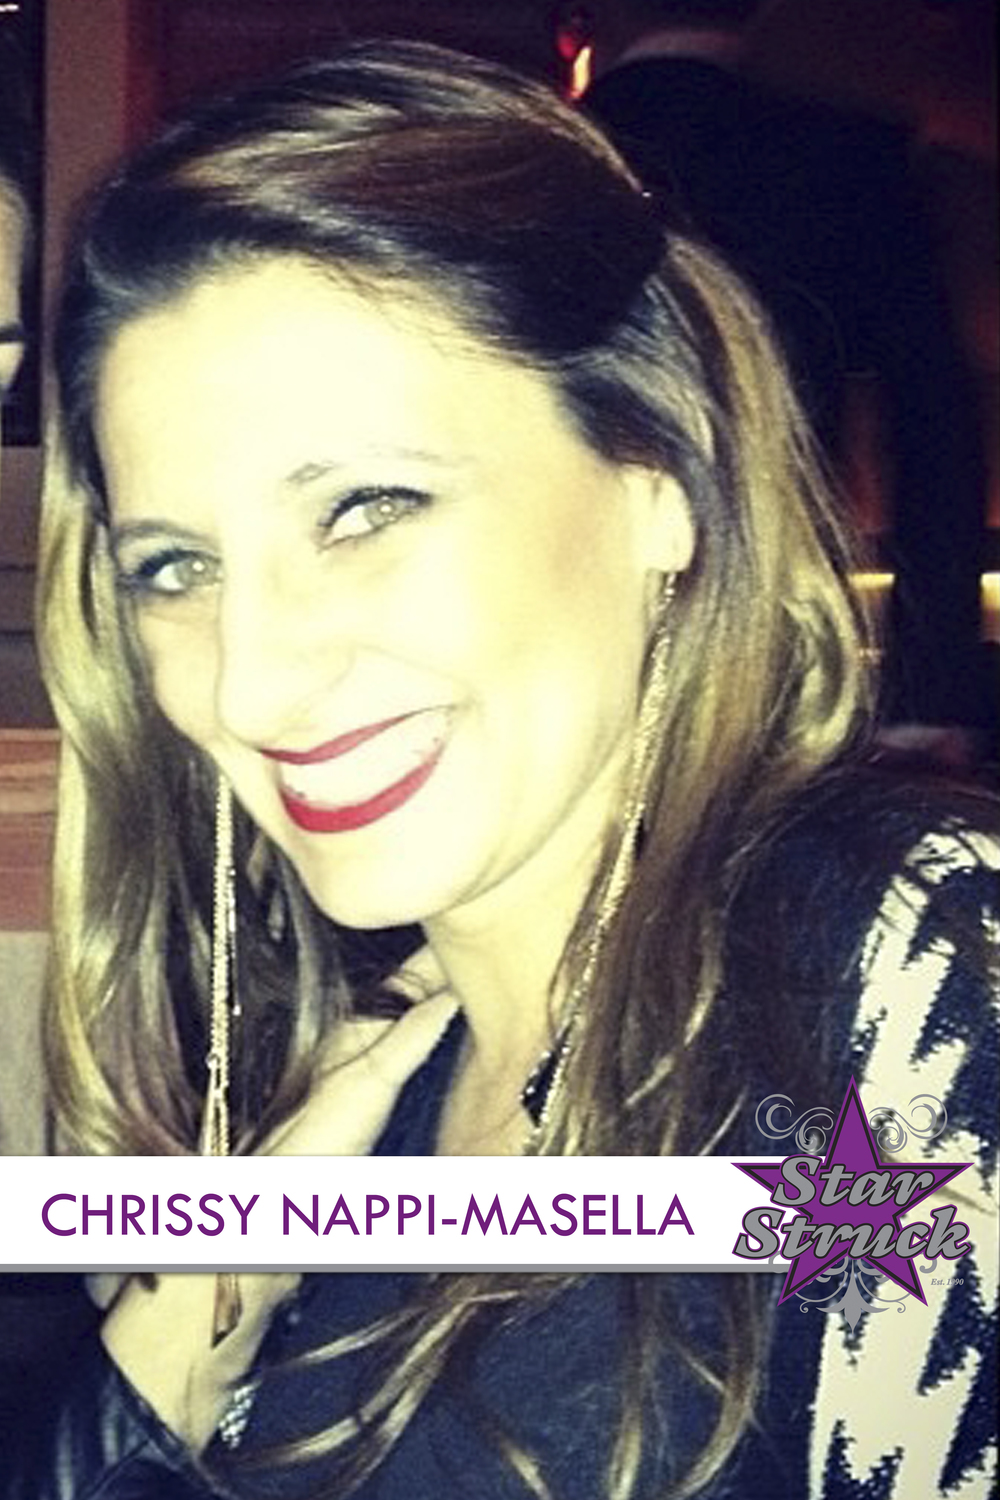 "CHRISSY NAPPI-MASELLA   Chrissy Masella has been part of the Star Struck family for the last 25 years. She began as a member of the Company and continues to share her bubbly personality & talent at a place she considers her second home. After graduating from LaGuardia H.S. she went on to receive her bachelor's degree in dance from Hunter College and her Masters degree in elementary education from St. Johns University. Chrissy is currently teaching at P.S. 3 as a 2nd grade Special Education Teacher and is the choreographer for the Children's Theater at Wagner College. She has danced and competed all over the country and has choreographed anything from fashion shows to community park openings. She loves to share her love of dance and plans on doing so for another 25 years at SSDS. This past year Chrissy was blessed to welcome her son Jax into the Star Struck family where he is officially the newest and youngest STRUCK BOY even though he hasn't learned to walk yet. ""Life isn't about waiting for the storm to pass, it's about learning how to dance in the rain."""